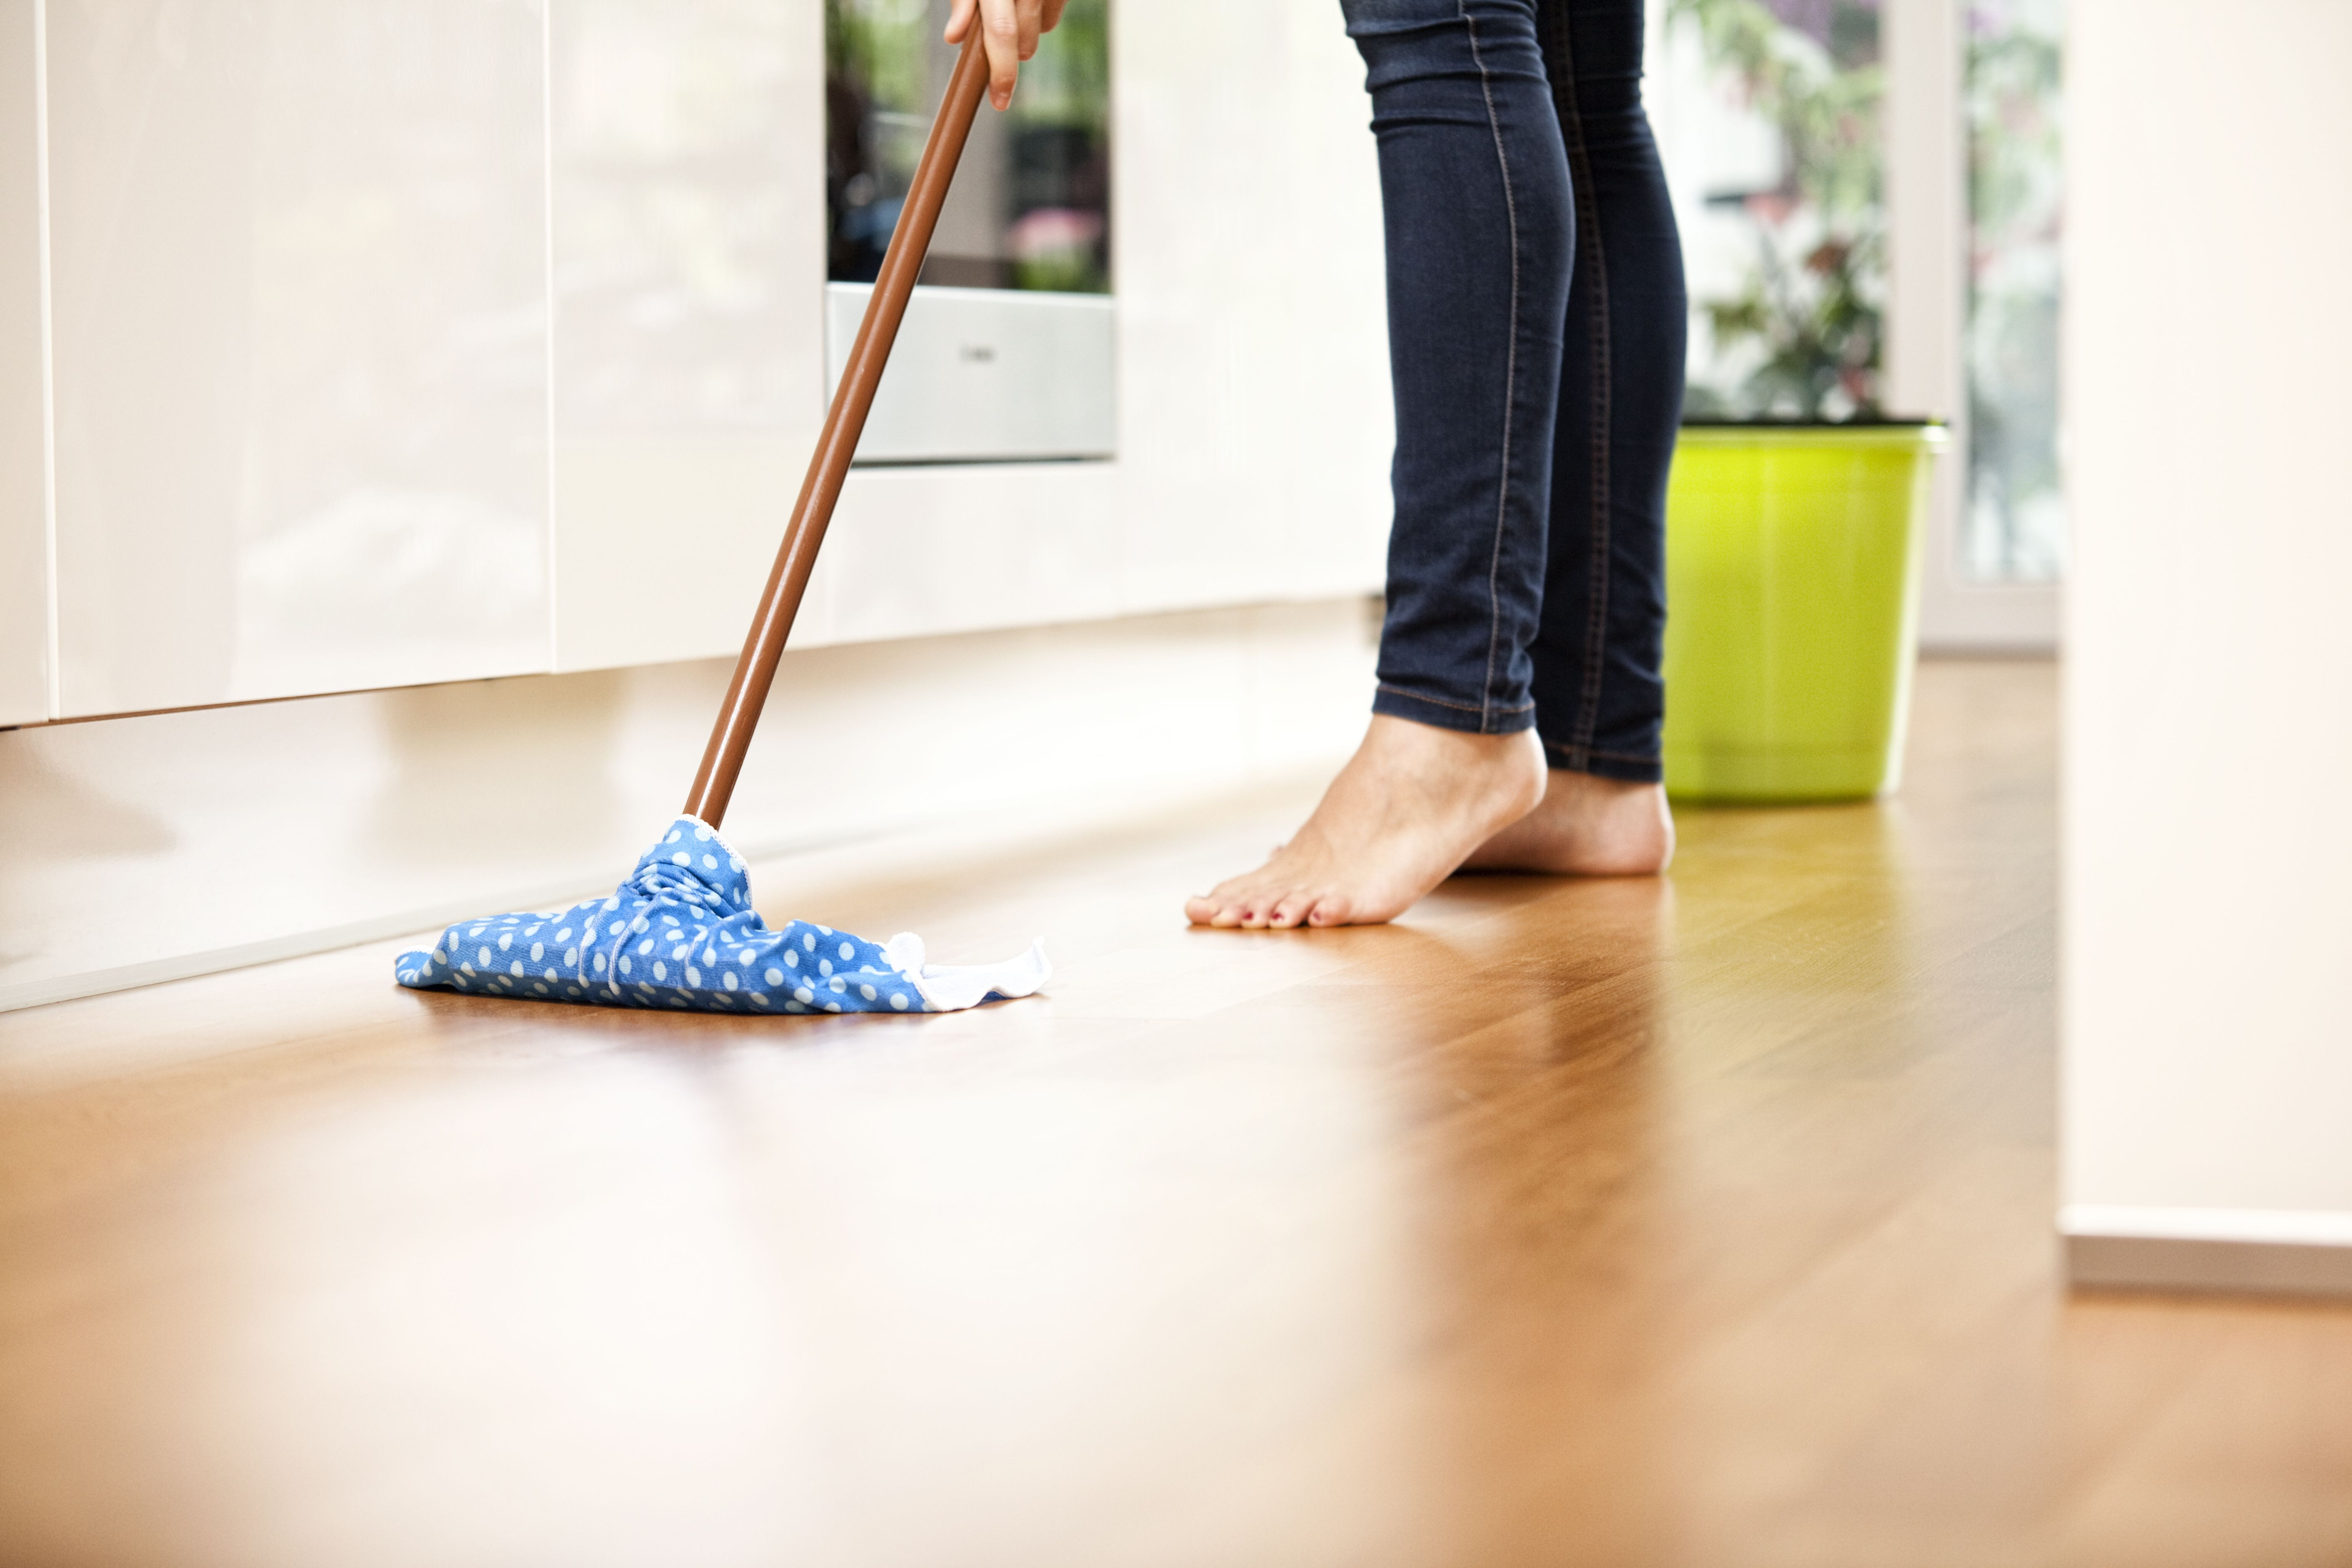 buy bona hardwood floor cleaner of the right cleaners for your solid hardwood flooring intended for woman wiping the floor 588494585 585049b43df78c491ebc200a